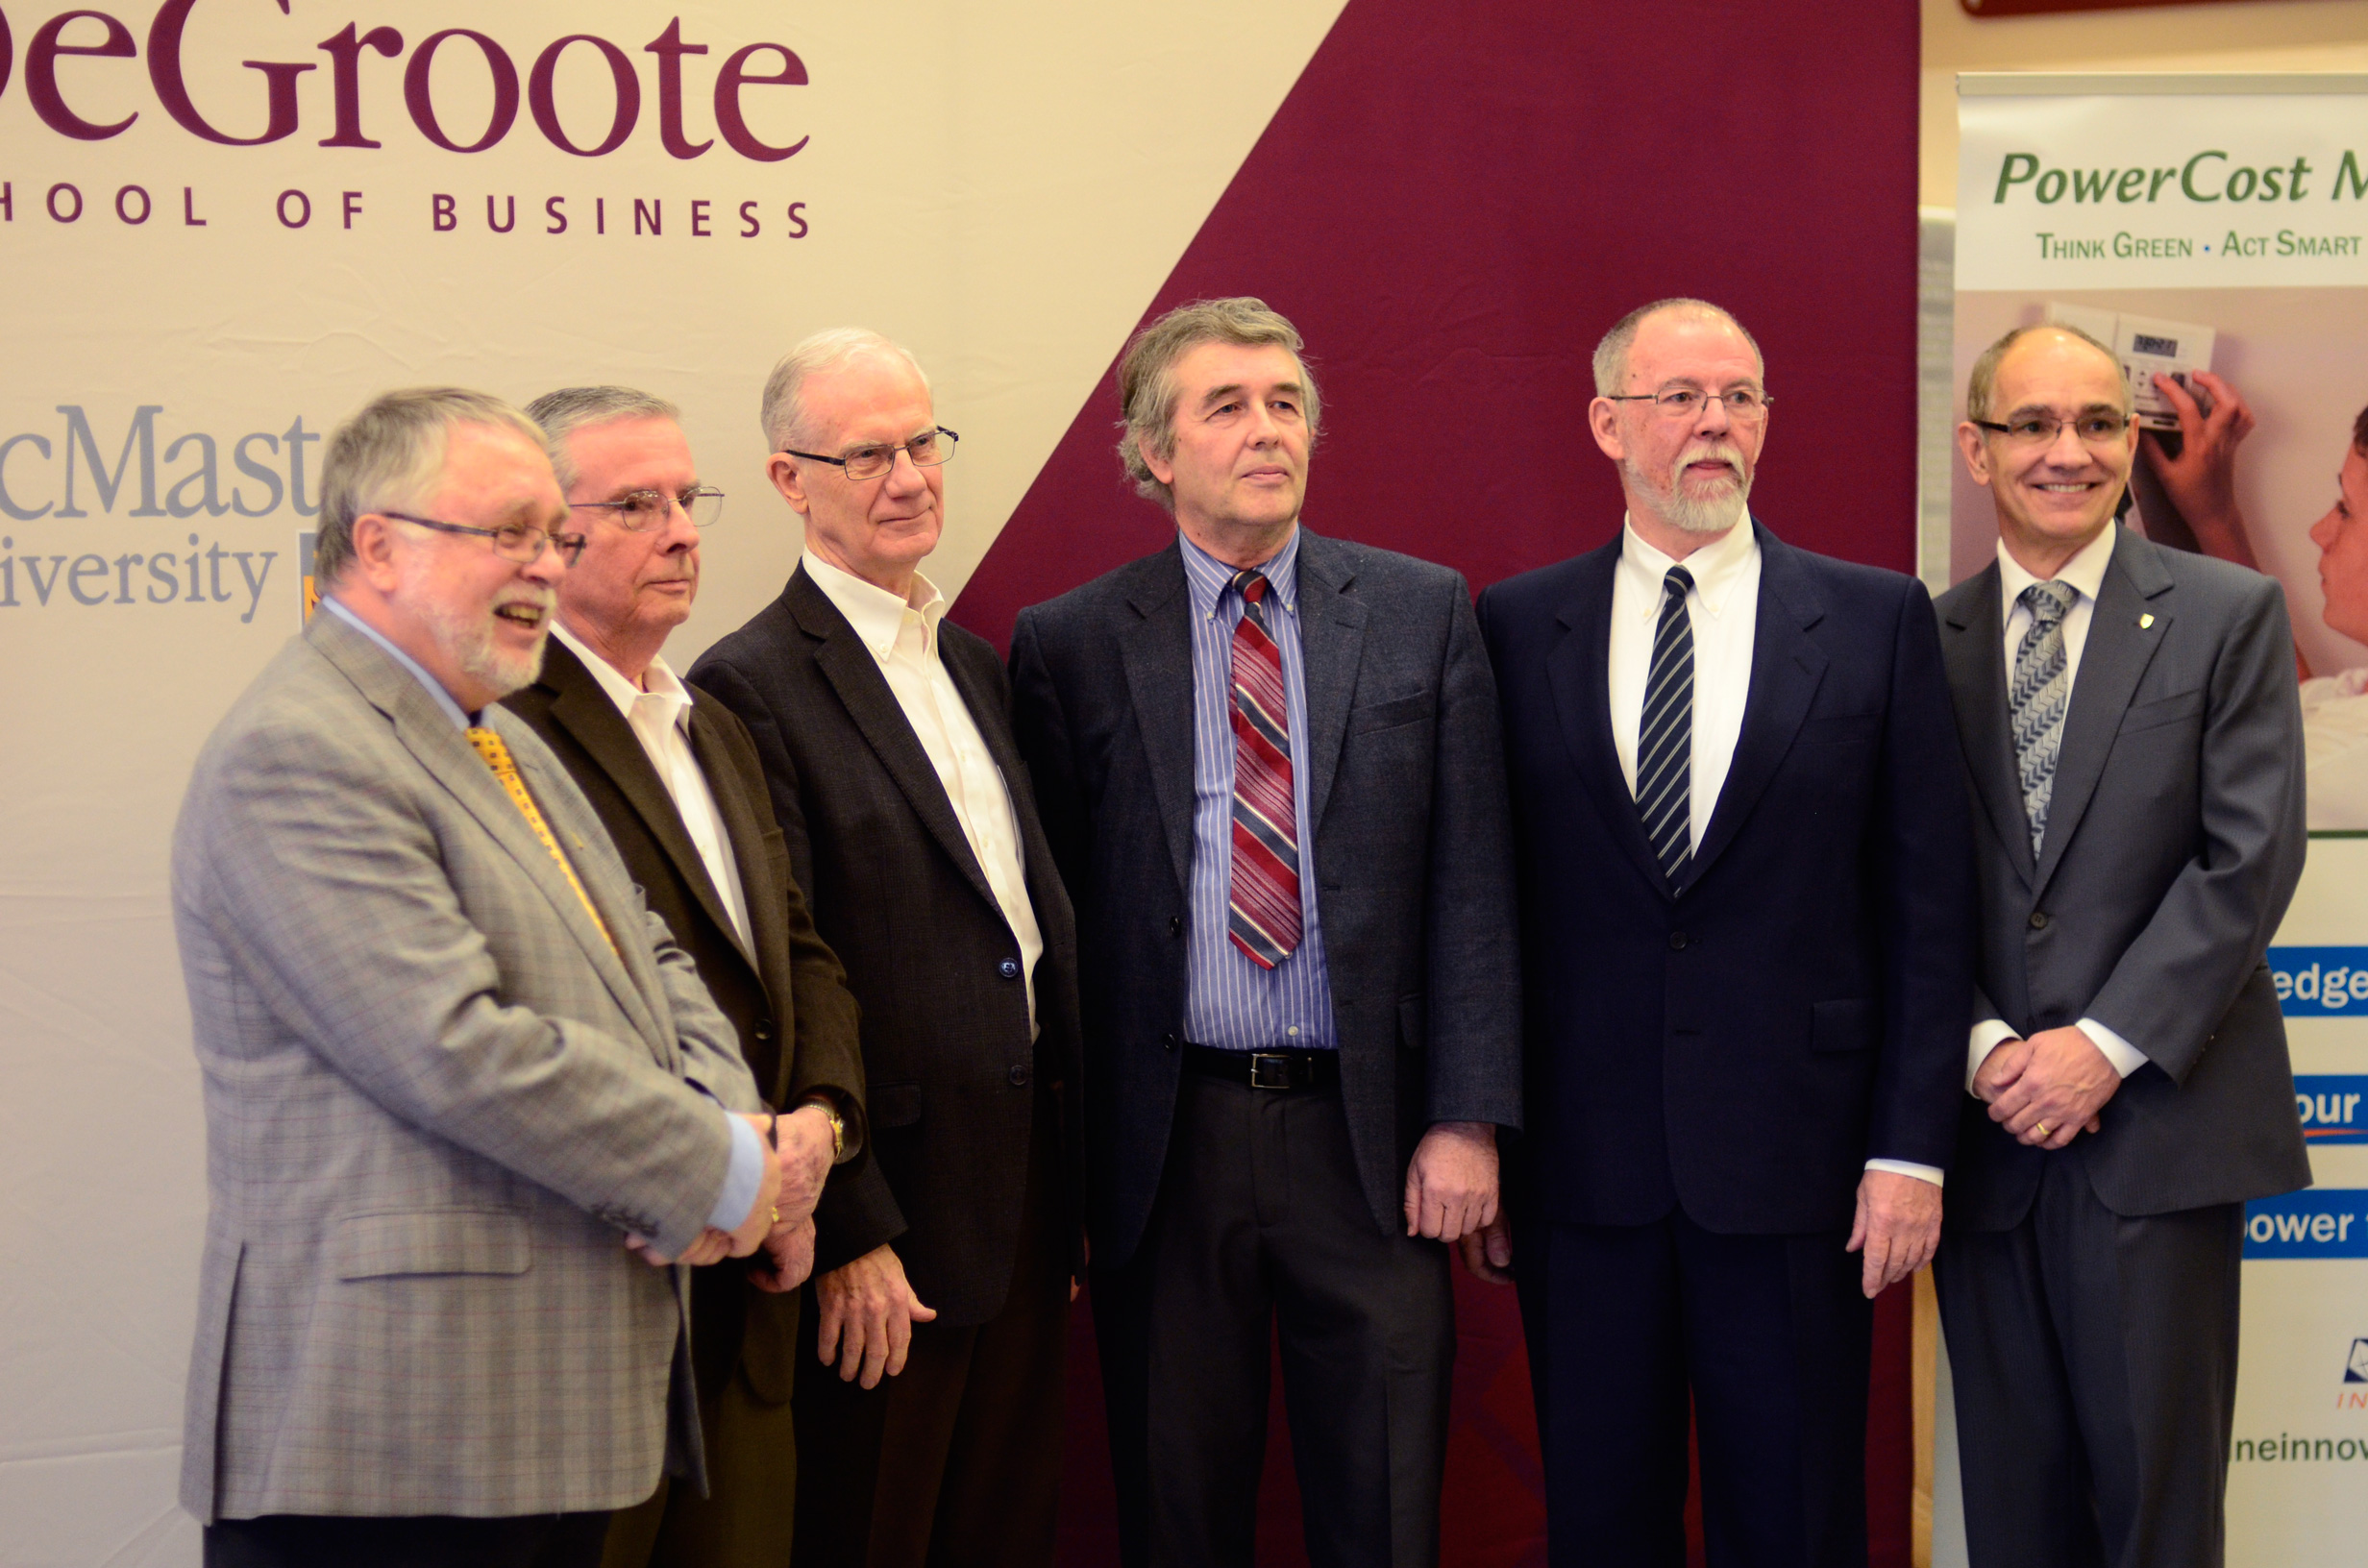 Ontario invests $1.4 million in energy research at DeGroote